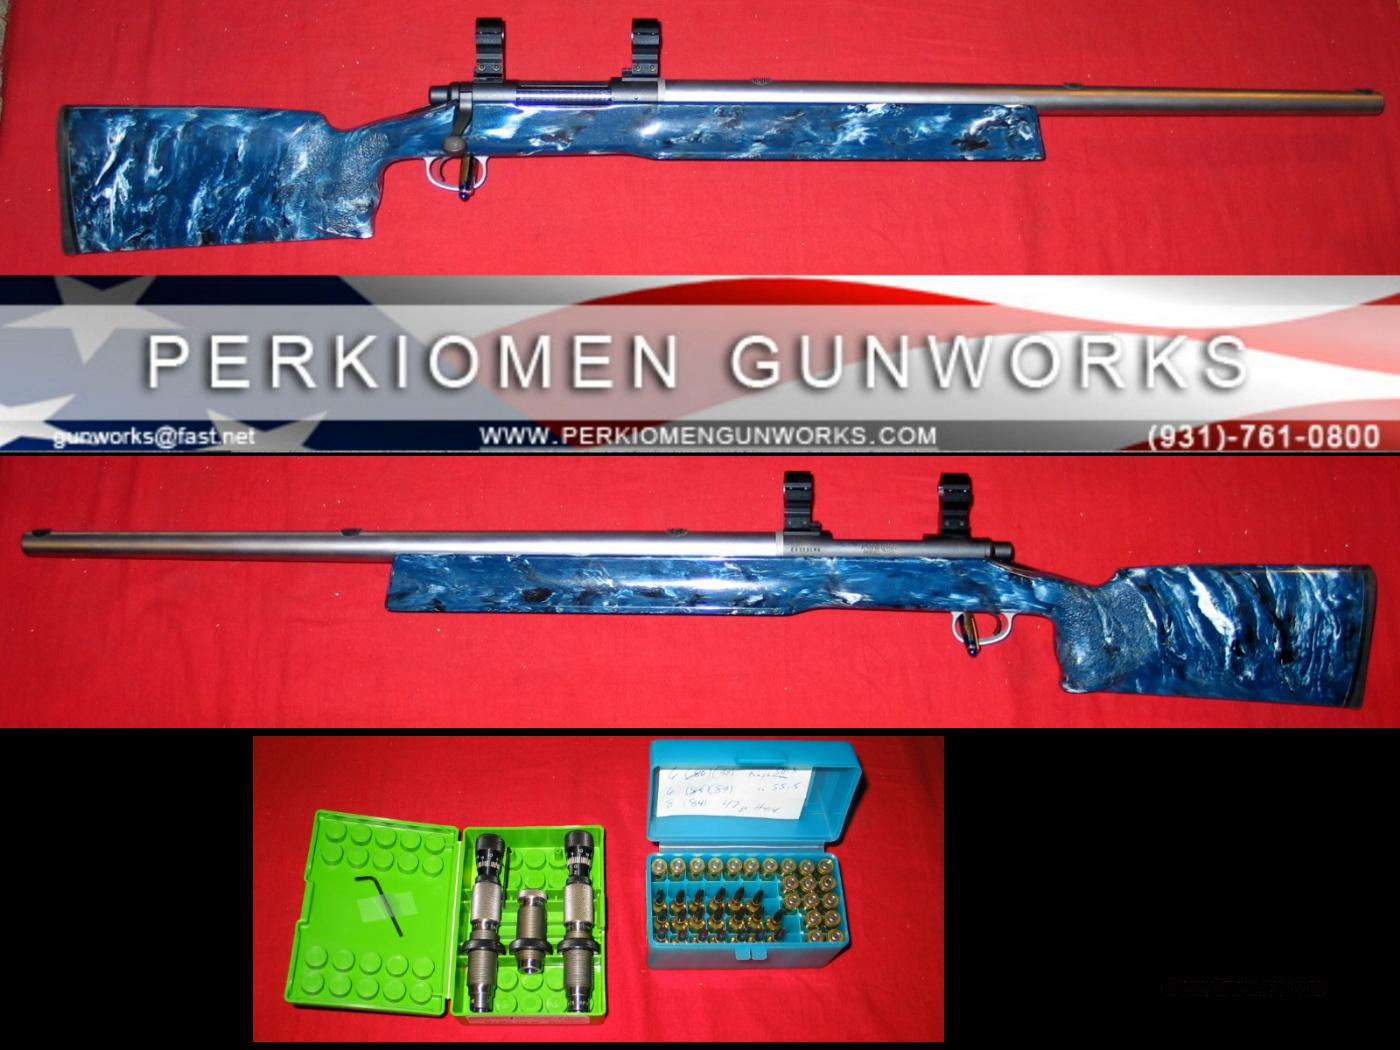 Rem 700 Custom BR in .243 AI w/Dies  Guns > Rifles > Benchrest/Varmint Rifles Misc.